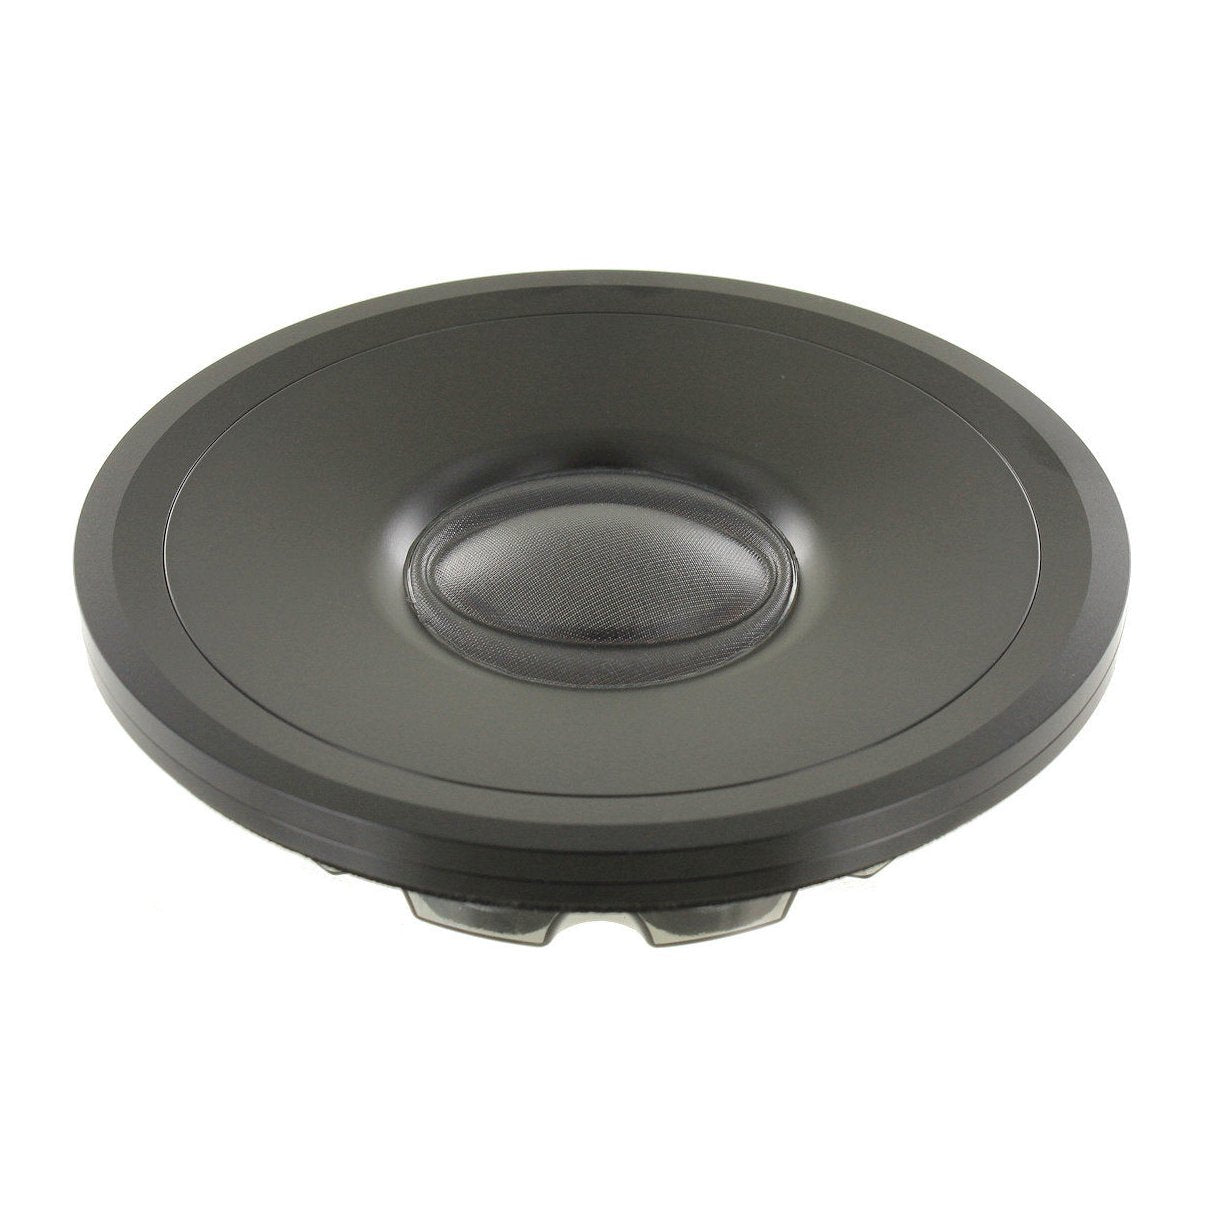 Scanspeak D3404/552000 Ellipticor Tweeter